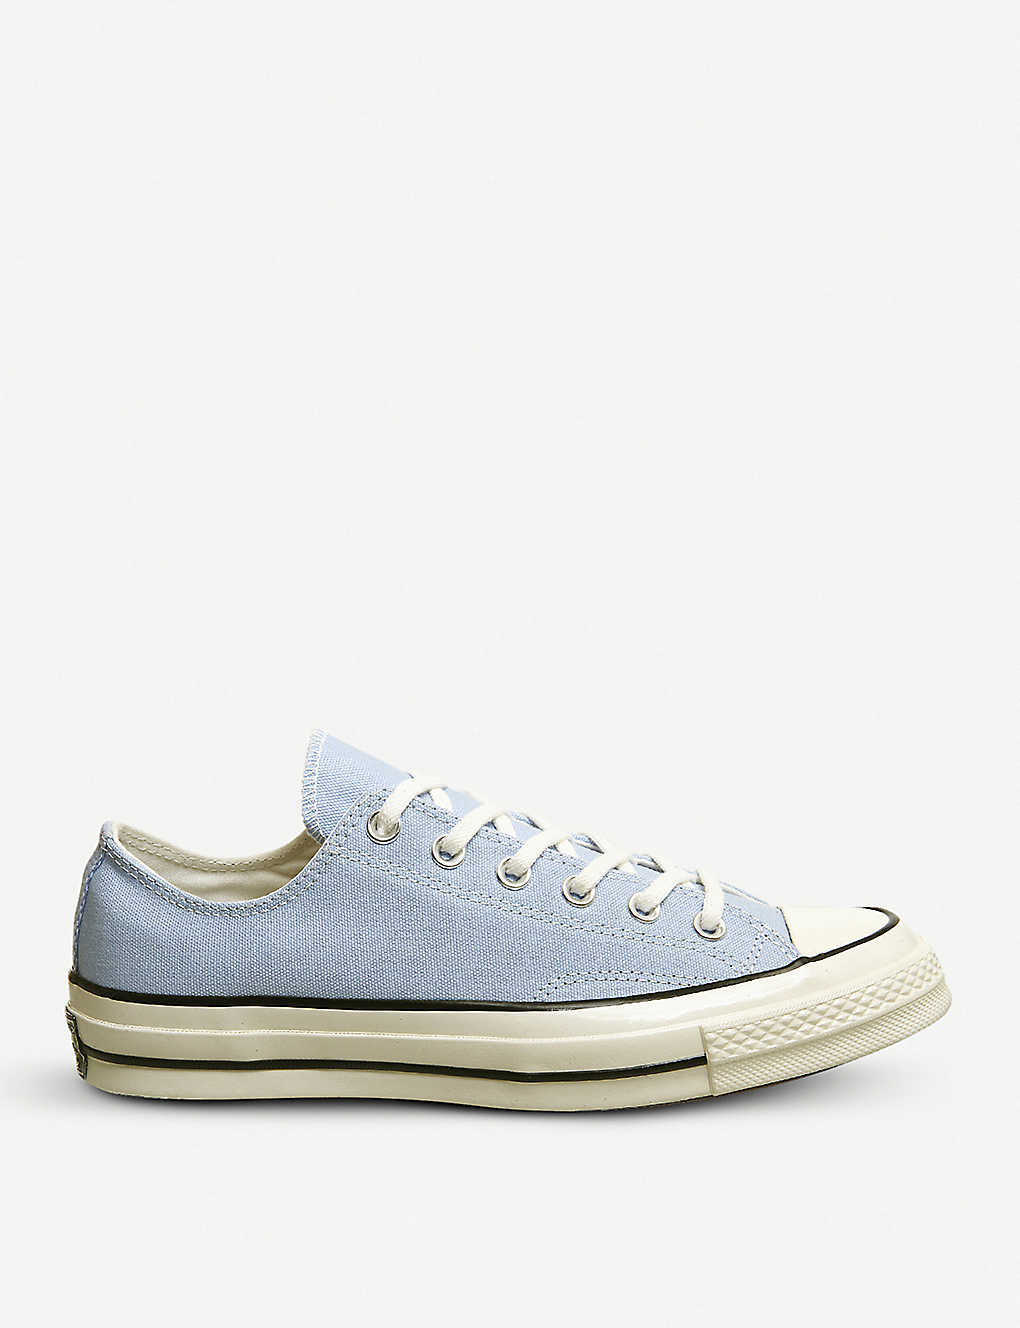 d884c07d8af0 All Star ox 70 s low-top trainers - Blue chill ...